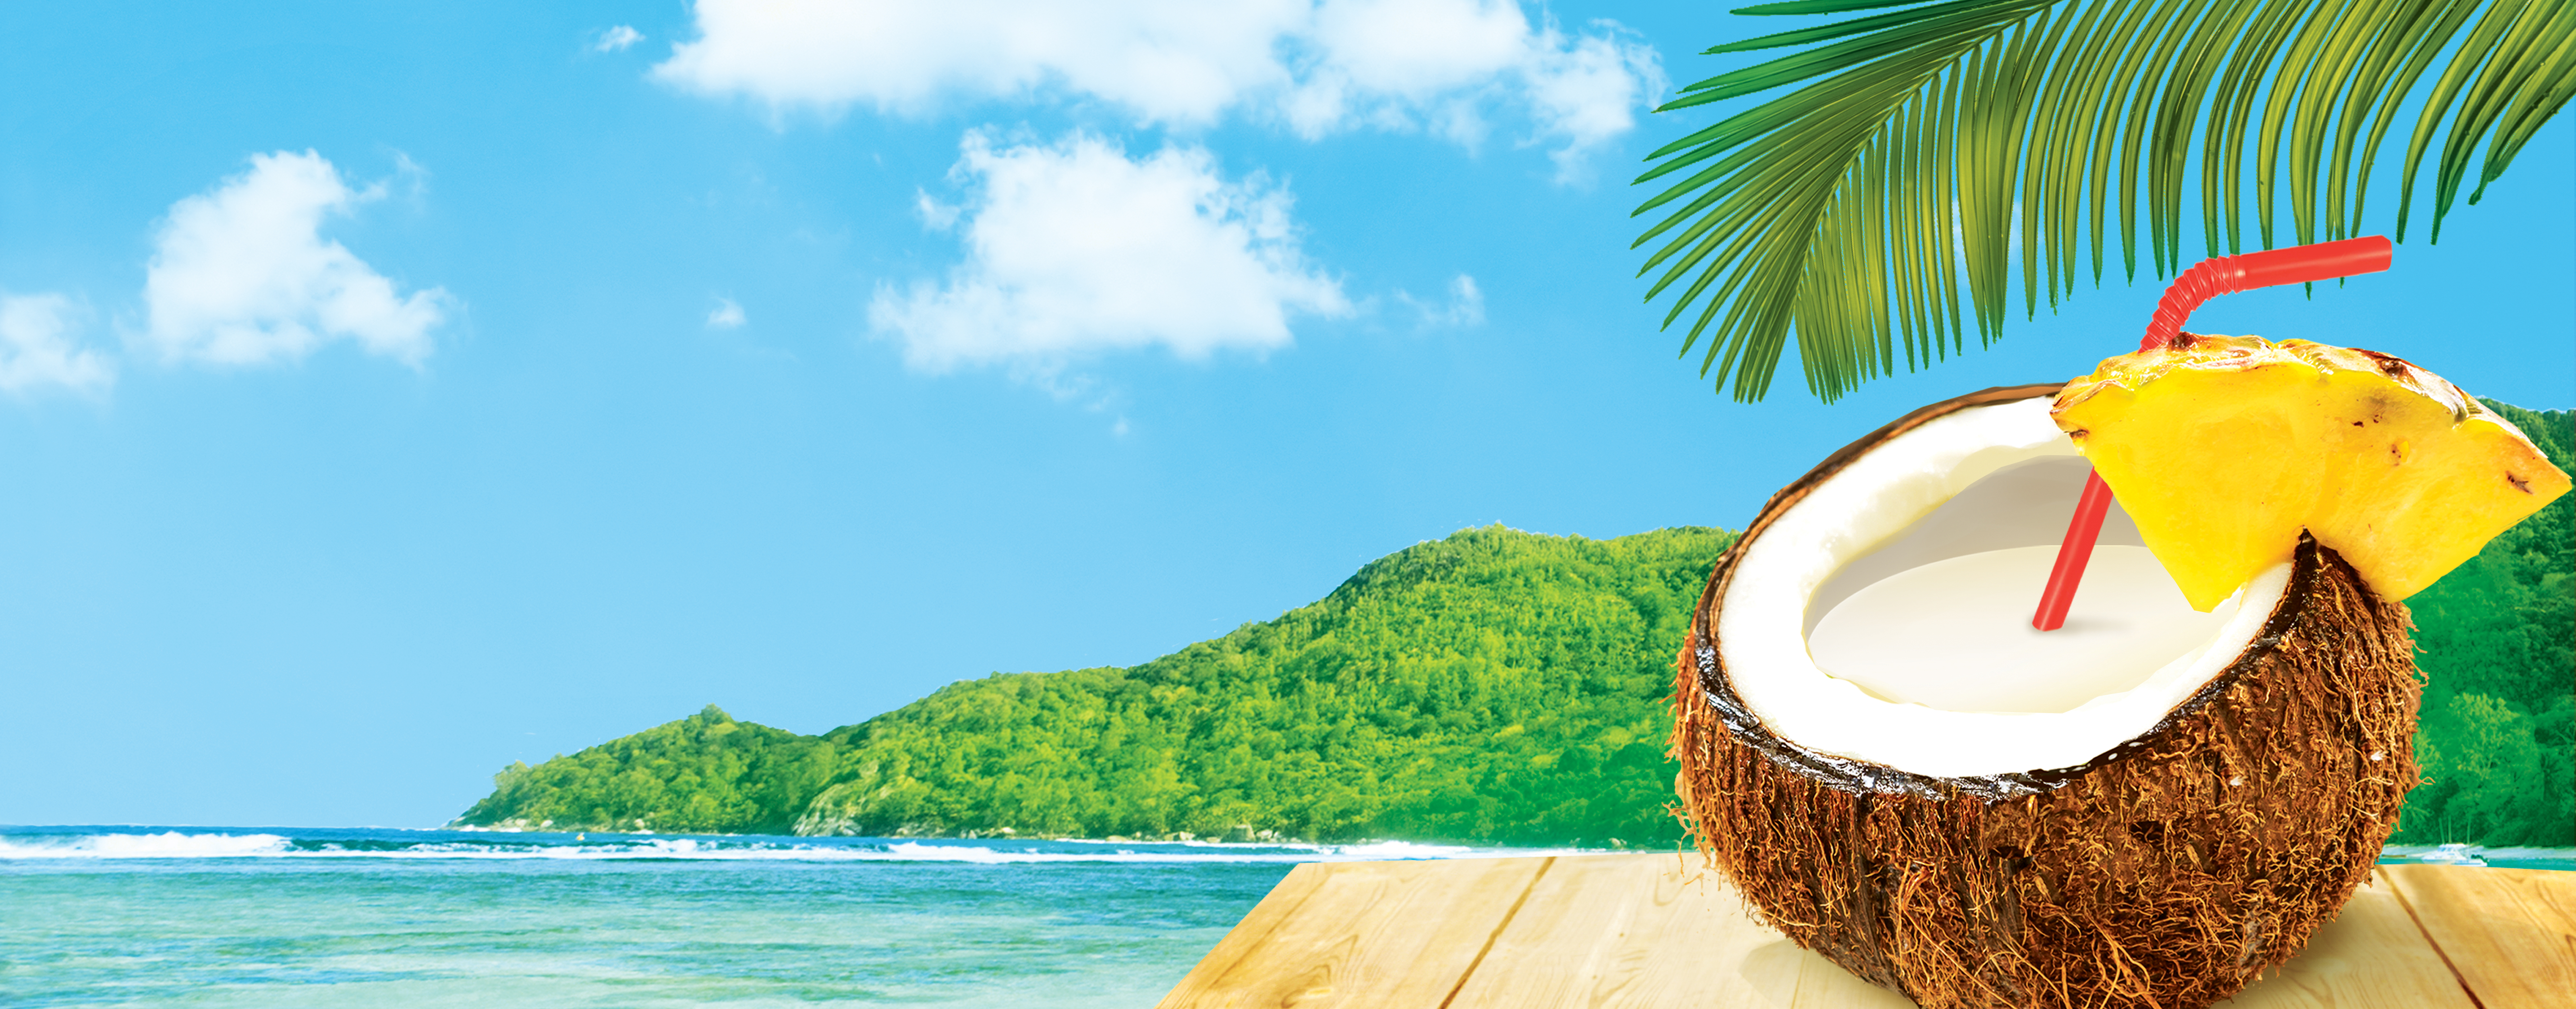 coconut with a straw sitting on table with beach scene behind